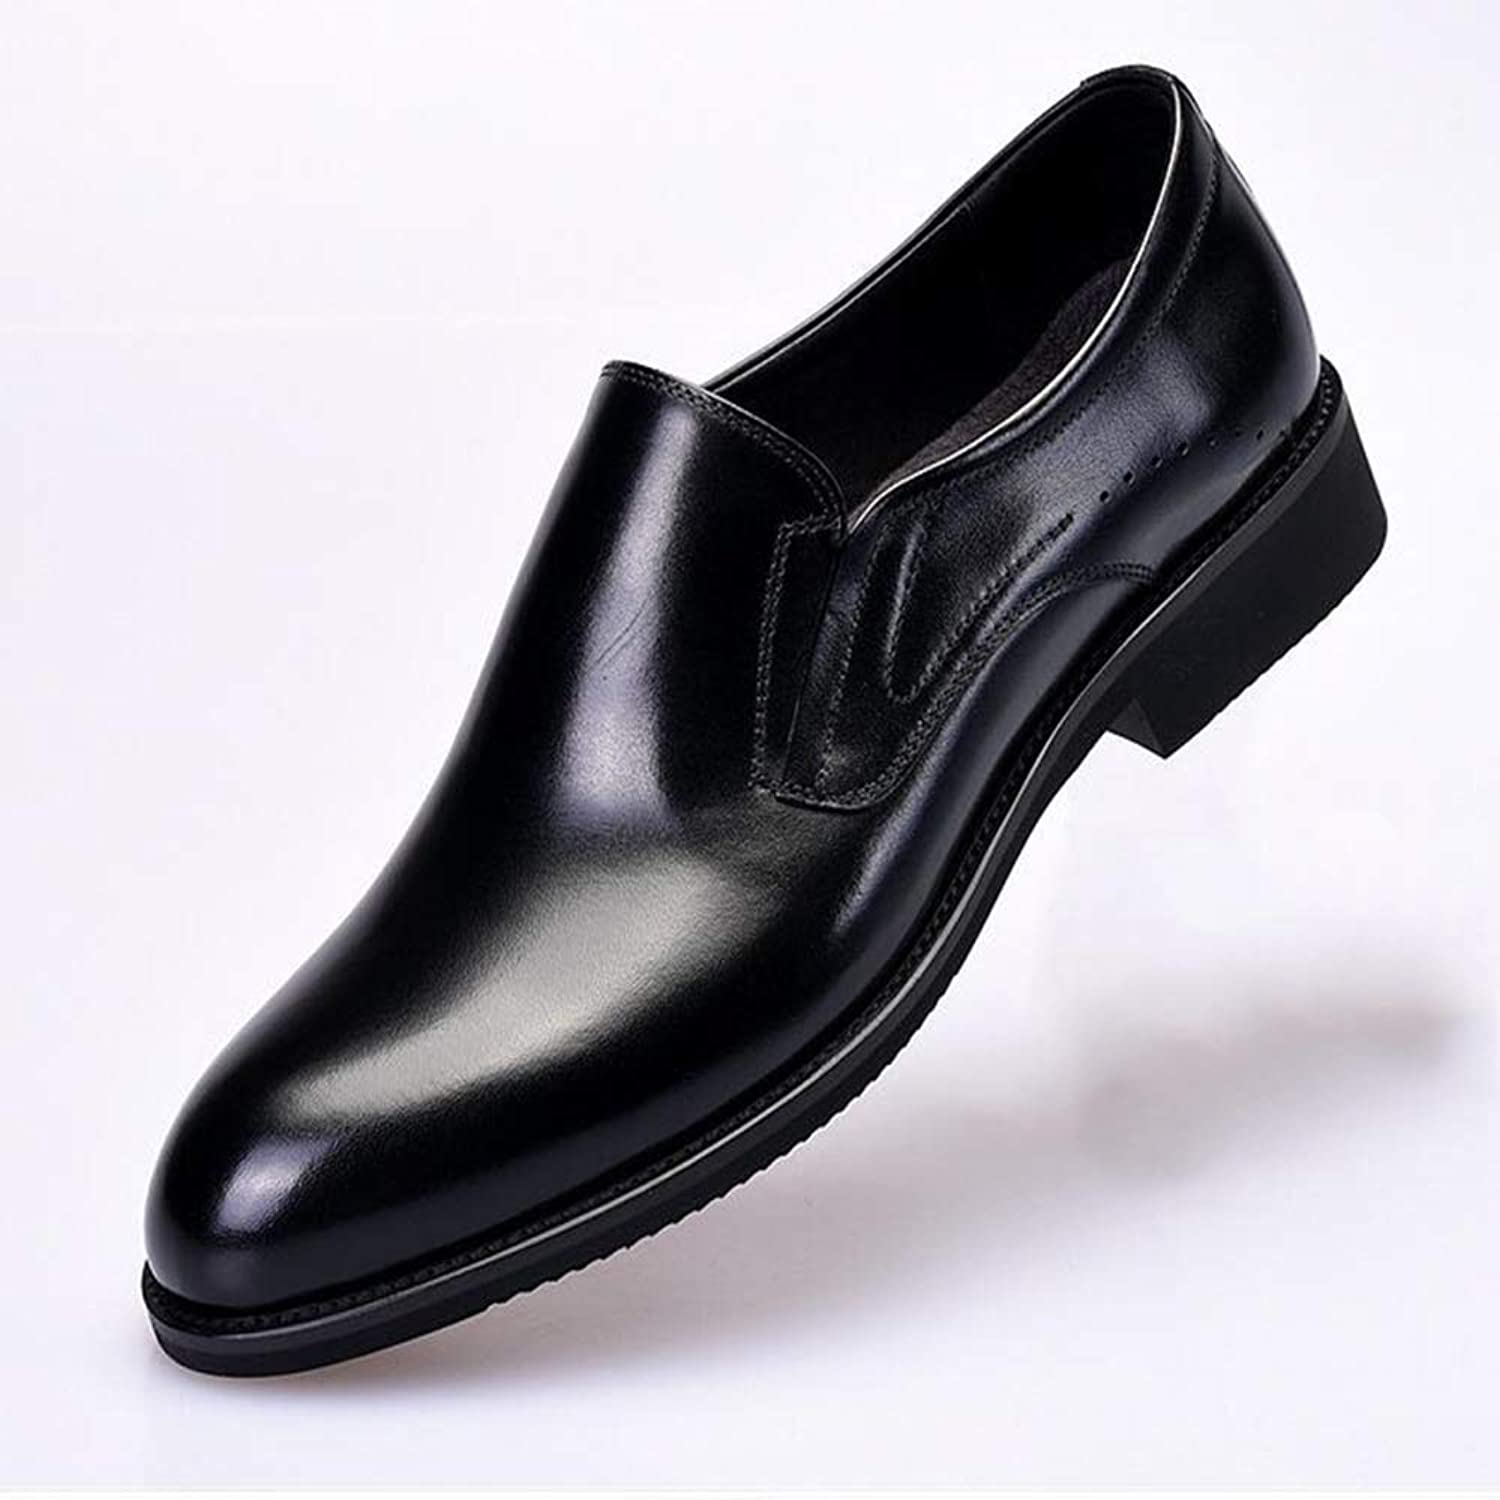 OFZYG Men'S Leather shoes Trendy Youth Fashion Pointed shoes Leather Business Dress Leather Men'S shoes Low To Help Breathable Wear-Resistant Anti-Slip